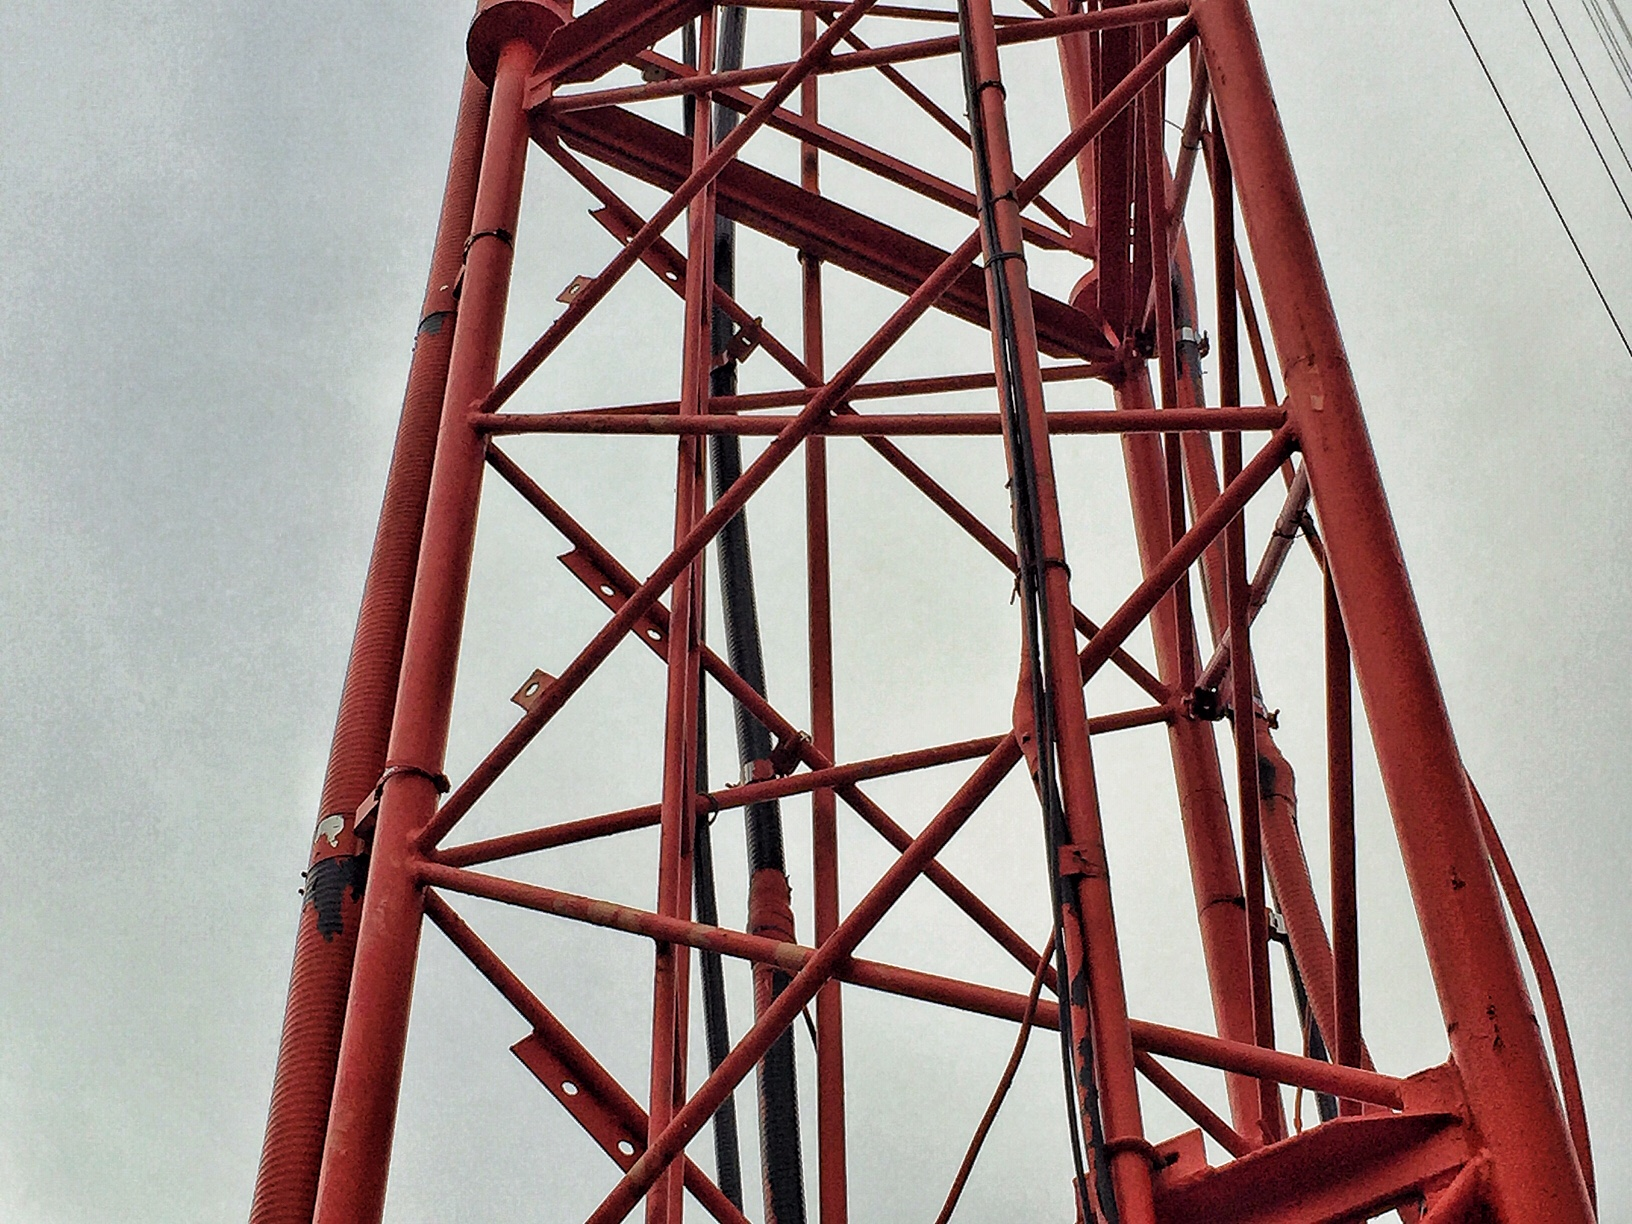 Section of Kansas Public Radio's transmitter tower in Lawrence (KANU FM) on KU's west campus.  (Photo by J. Schafer)